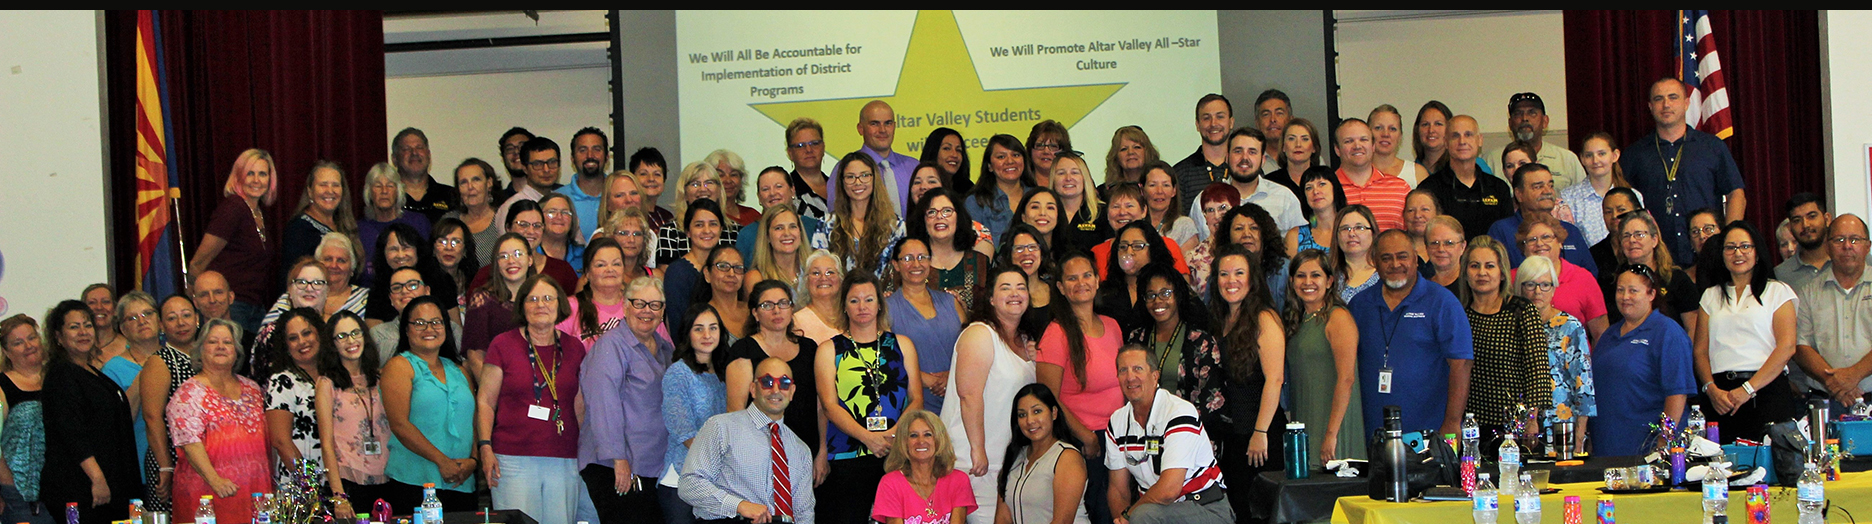 Group of Altar Valley Elementary School District staff members pose together